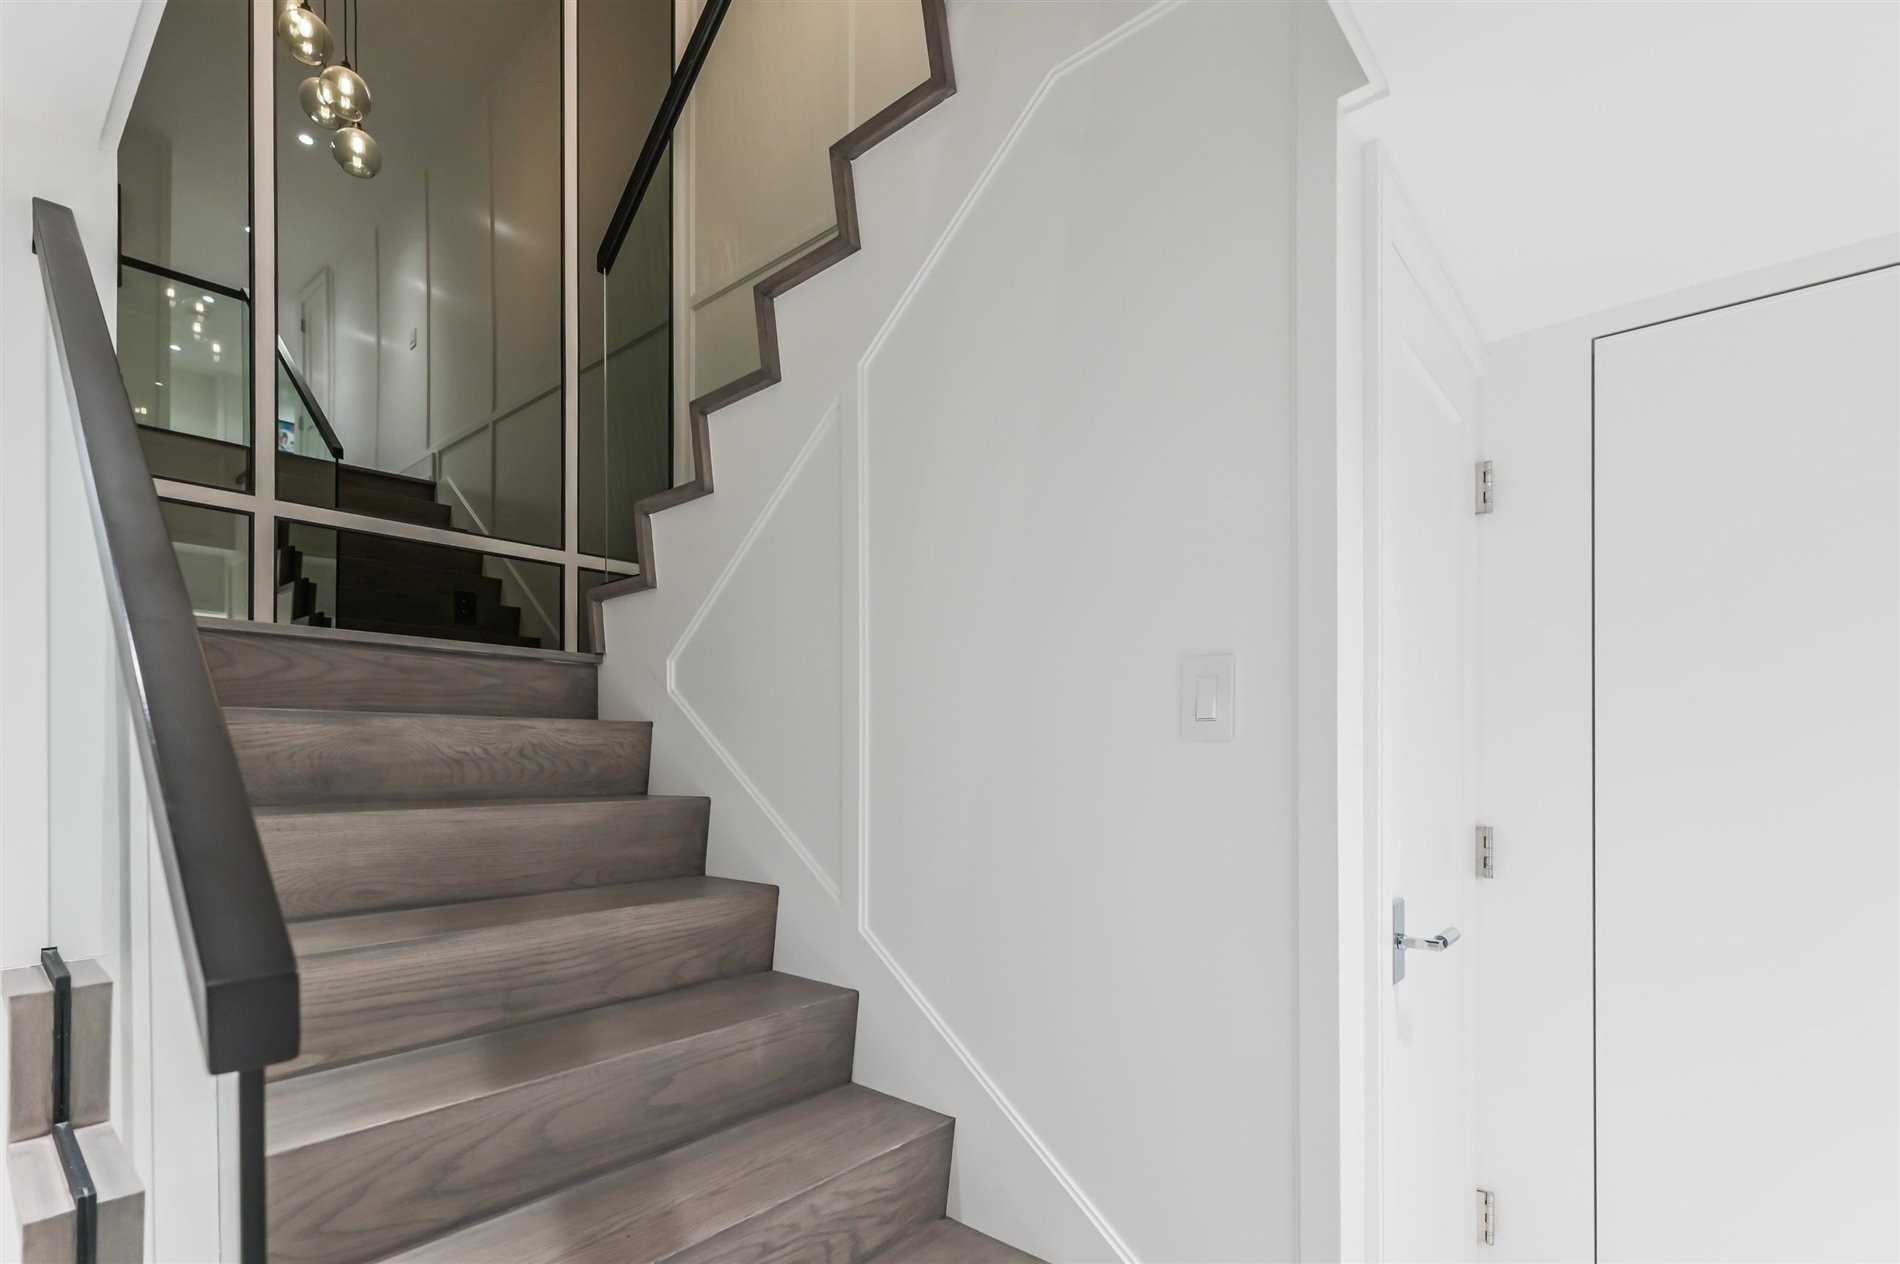 Condo Townhouse For Sale In Toronto , 2 Bedrooms Bedrooms, ,3 BathroomsBathrooms,Condo Townhouse,For Sale,Th 57,Prince Arthur